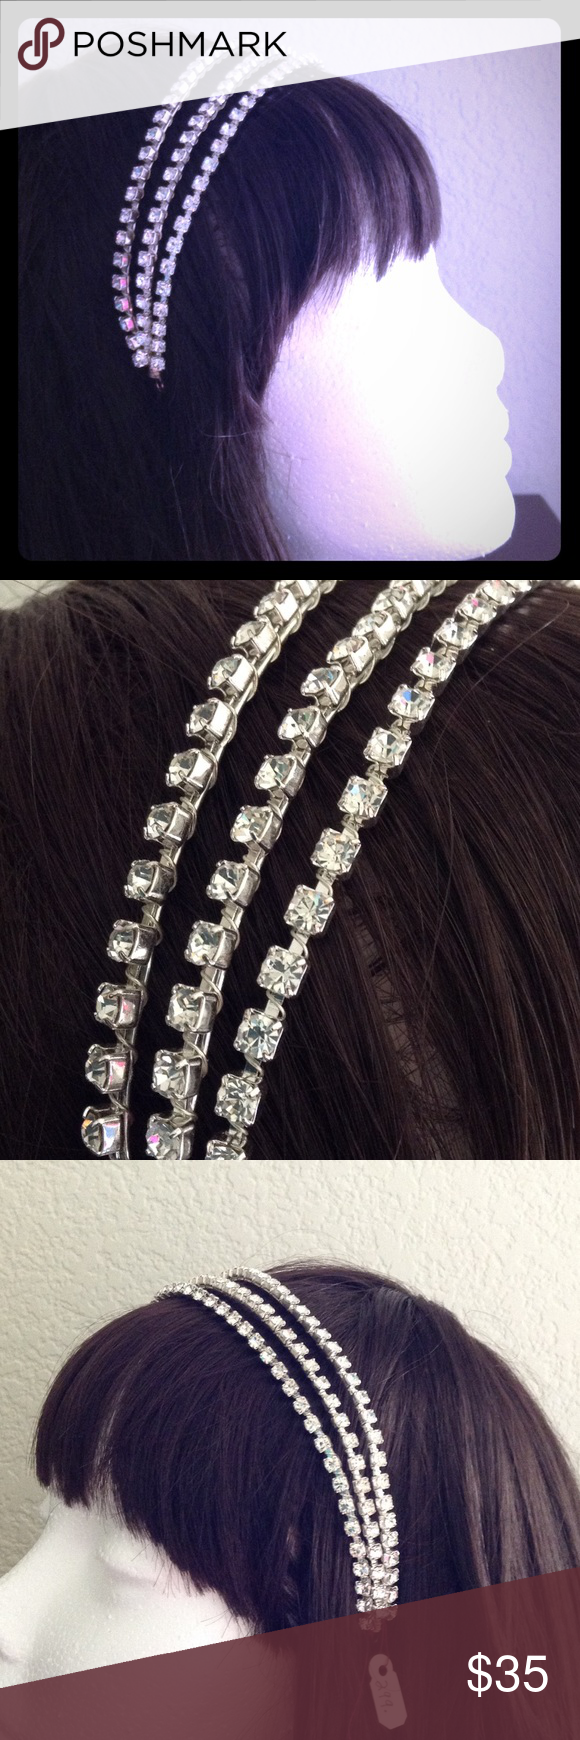 Nwt rhinestone tiara hair accessories formal and bling